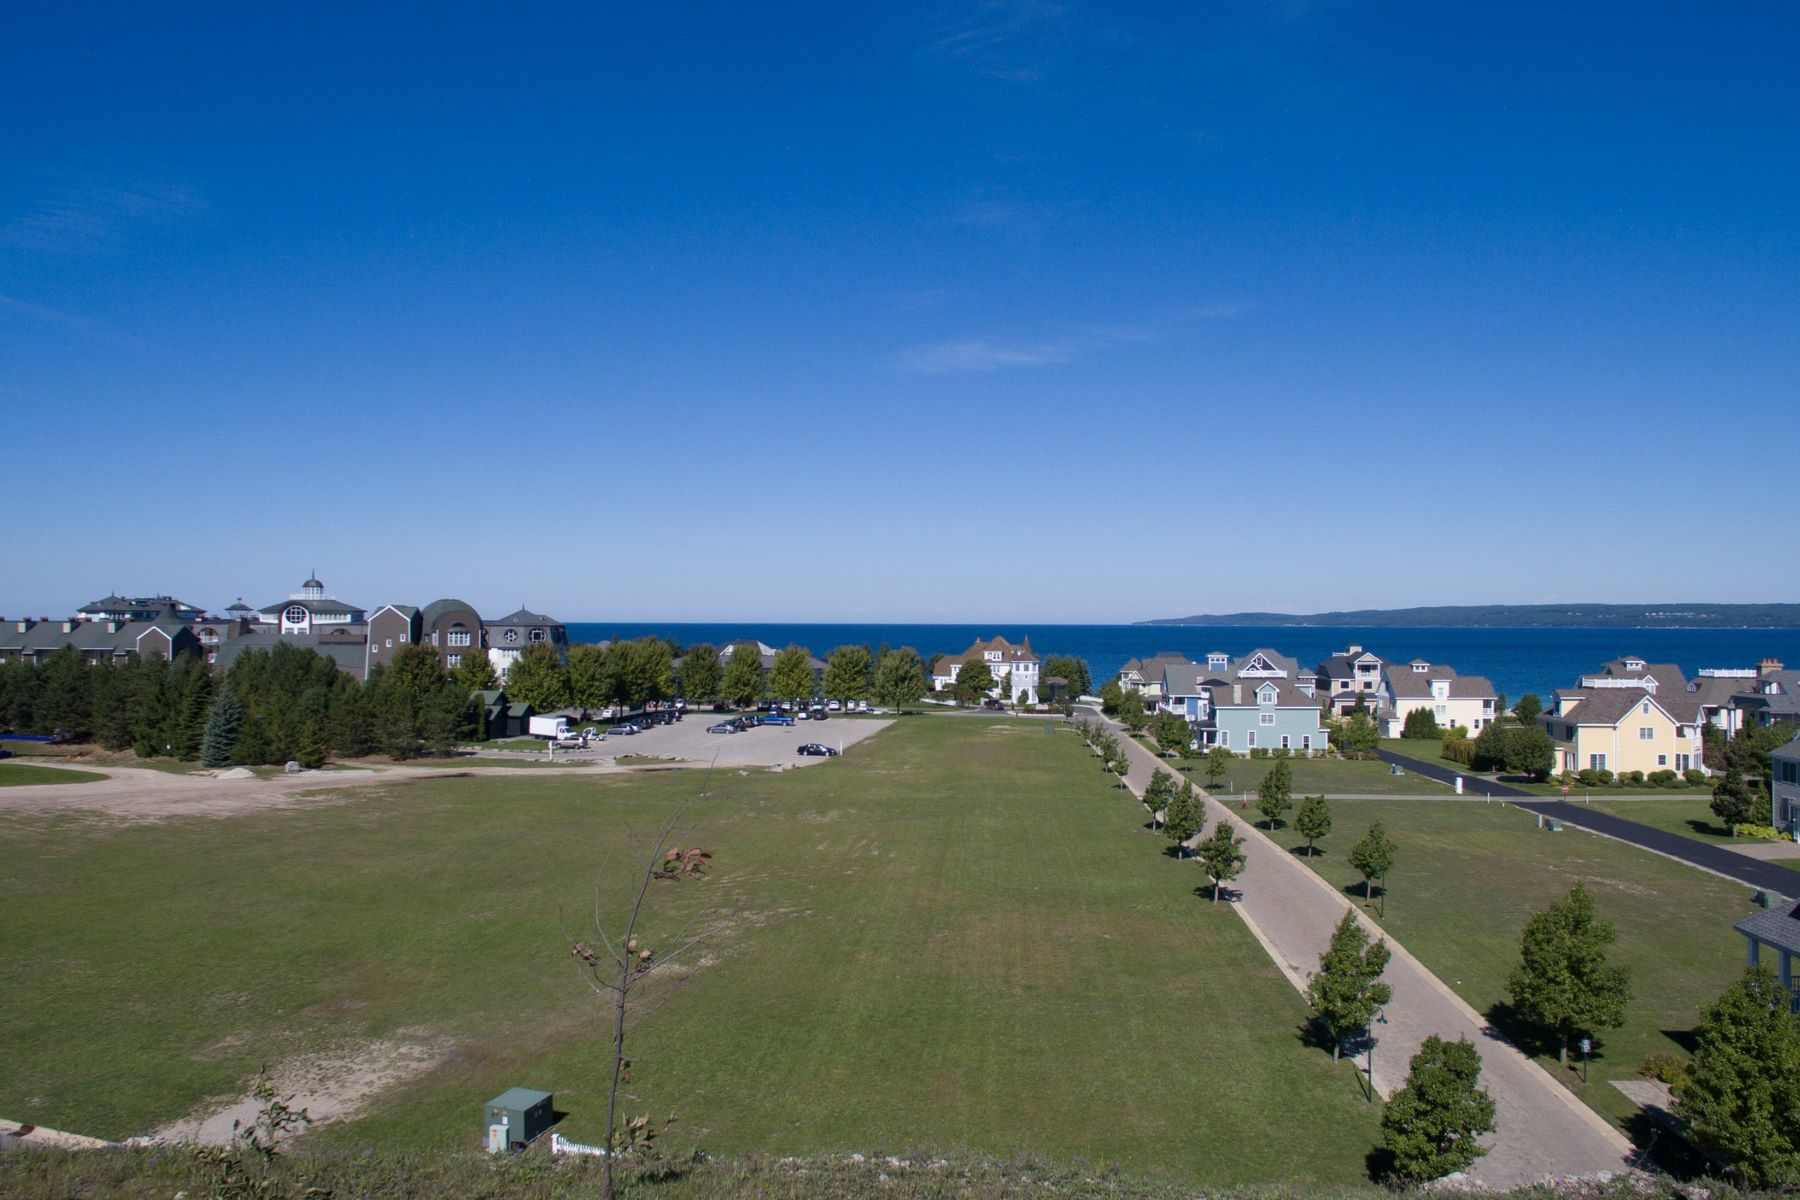 Land for Sale at Unit 7, The Ridge TBD Cliffs Drive, Unit 7, The Ridge Bay Harbor, Michigan, 49770 United States